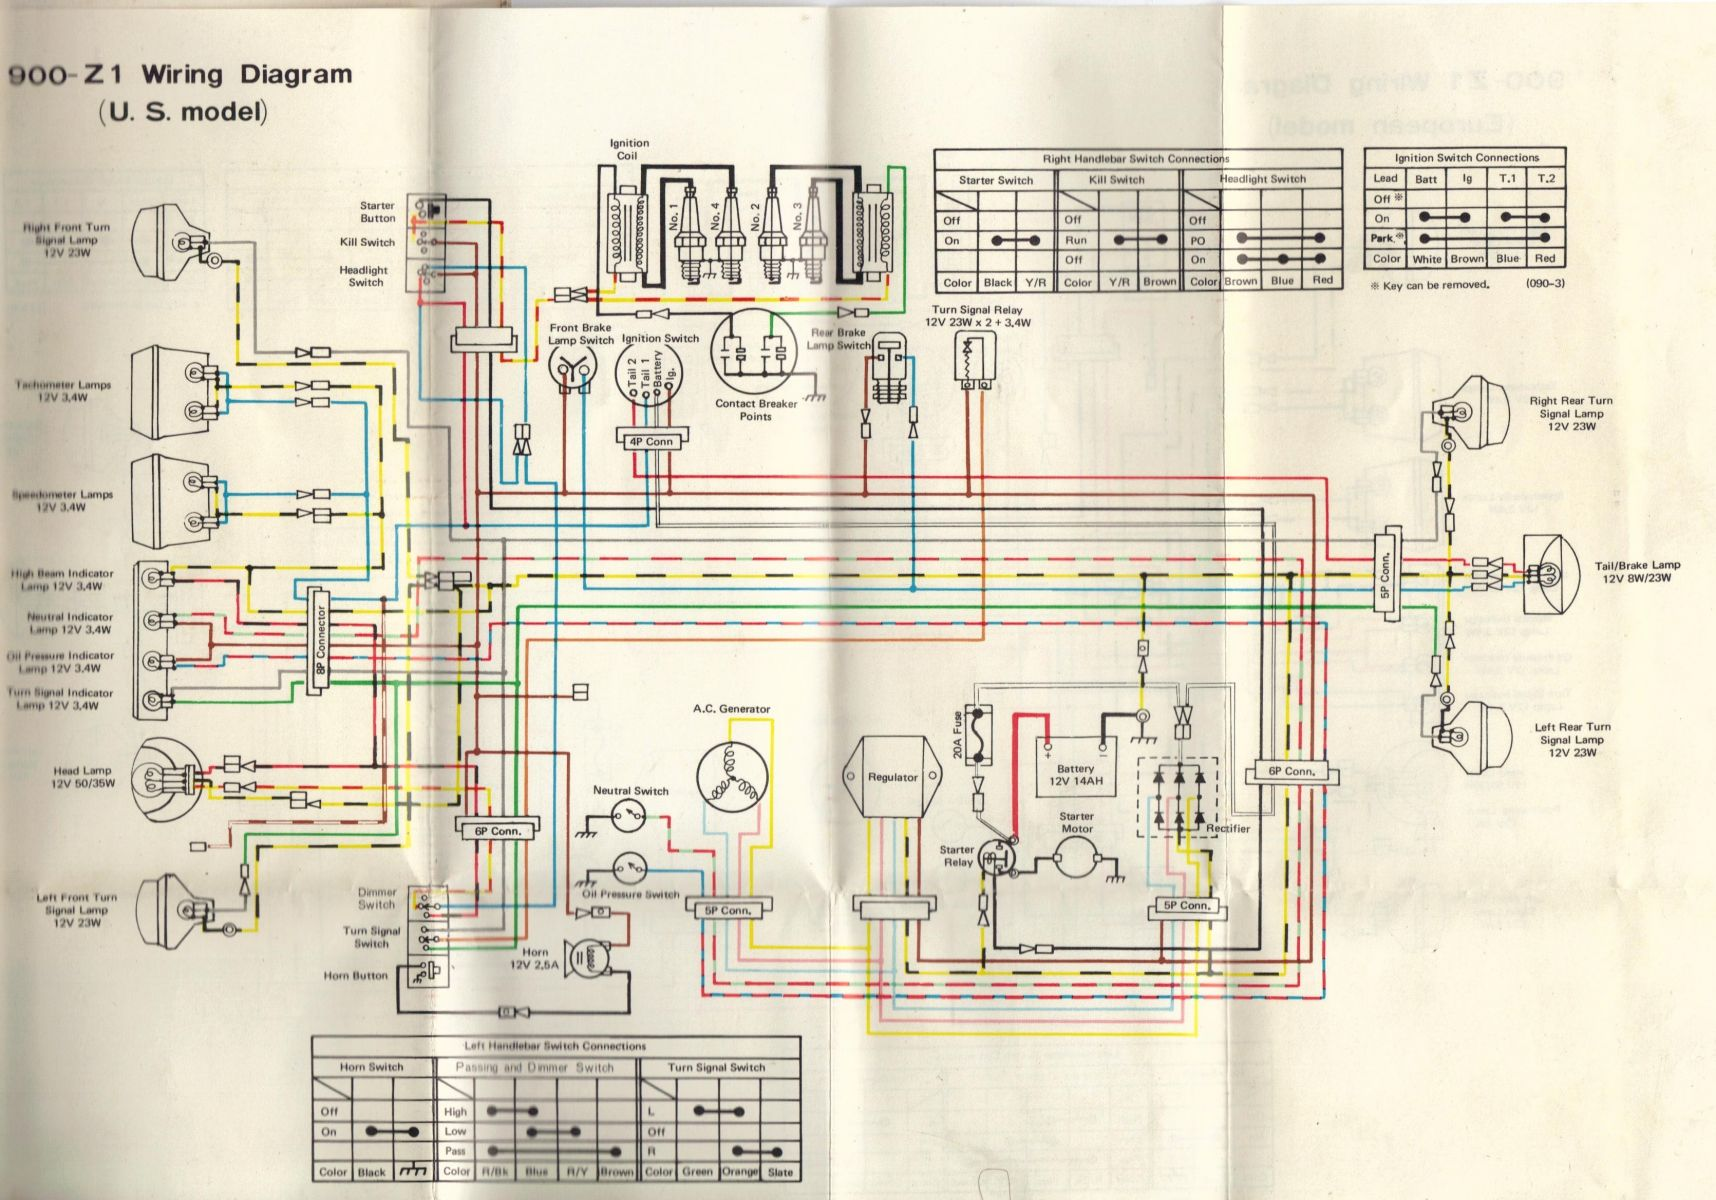 Patton floor fan replacement partston gas furnace wiring diagram 1975 z1 900 20amp fuse blowes imediately kzrider forum publicscrutiny Images